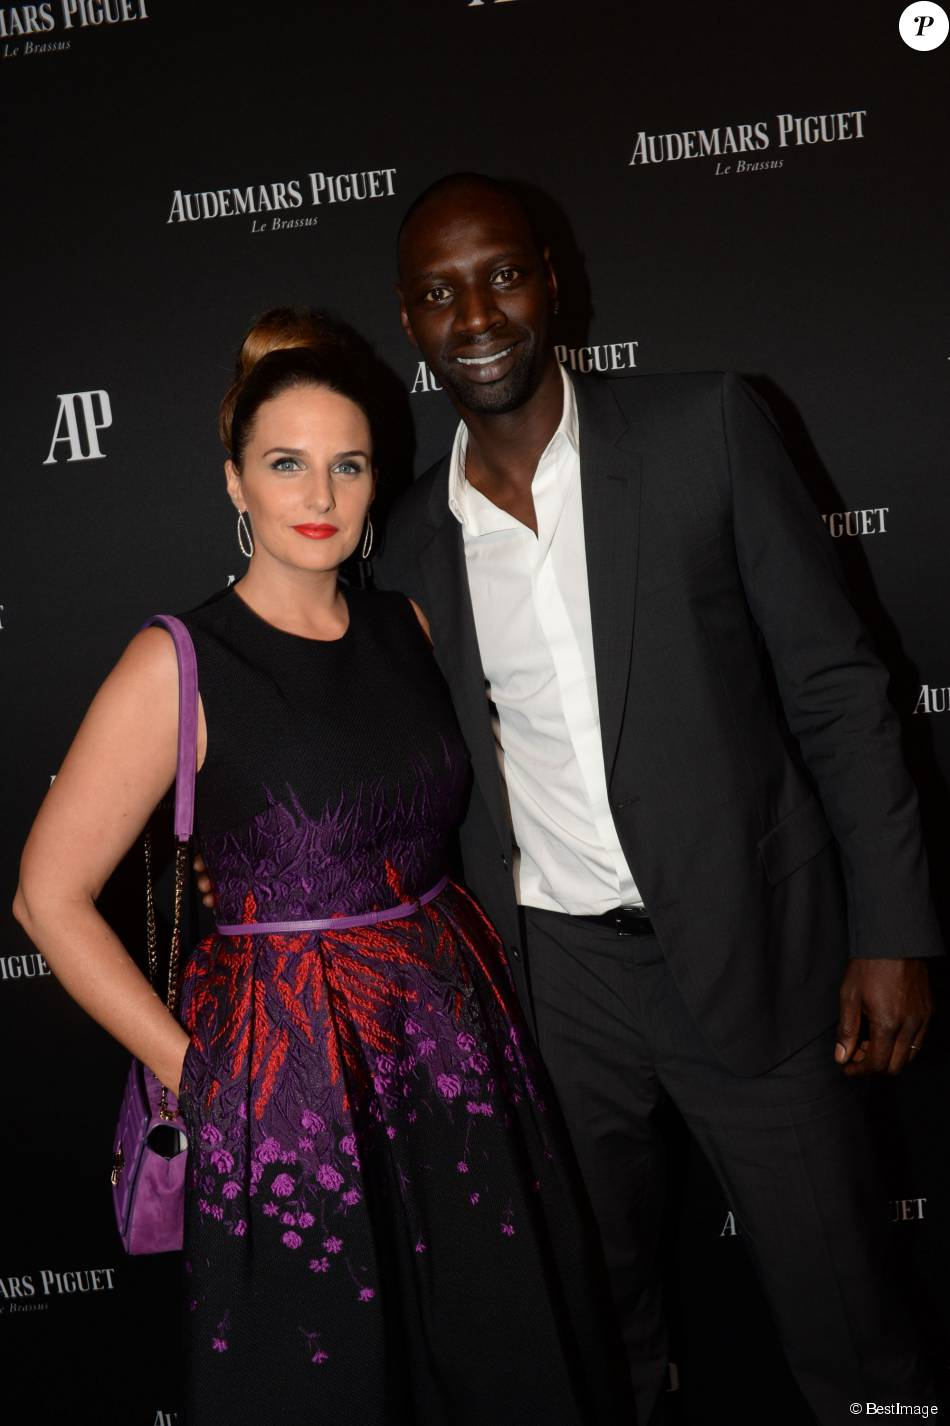 omar sy et sa femme h l ne la maison audemars piguet a c l br le lancement de la nouvelle. Black Bedroom Furniture Sets. Home Design Ideas